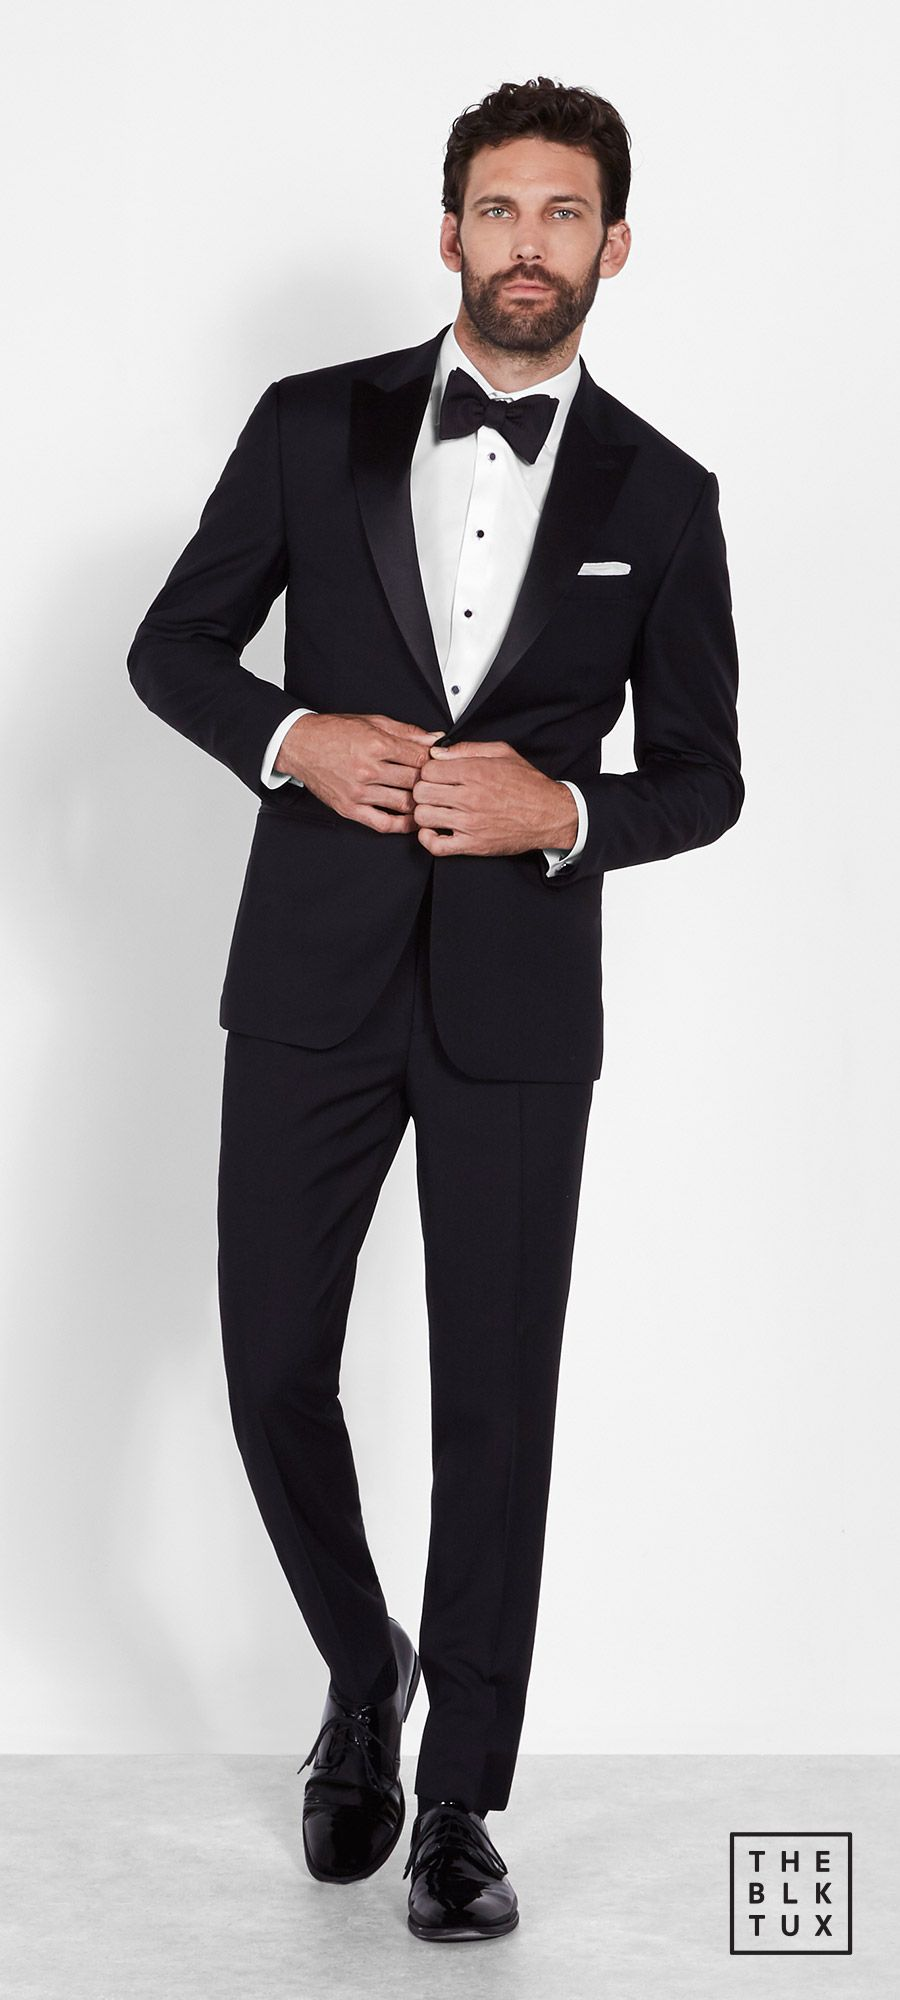 268499b8bc3c The Black Tux online tuxedos rental service the peak lapel tuxedo groommen  best man style -- Suit Up in Style, The Black Tux Way #wedding #theblacktux  ...